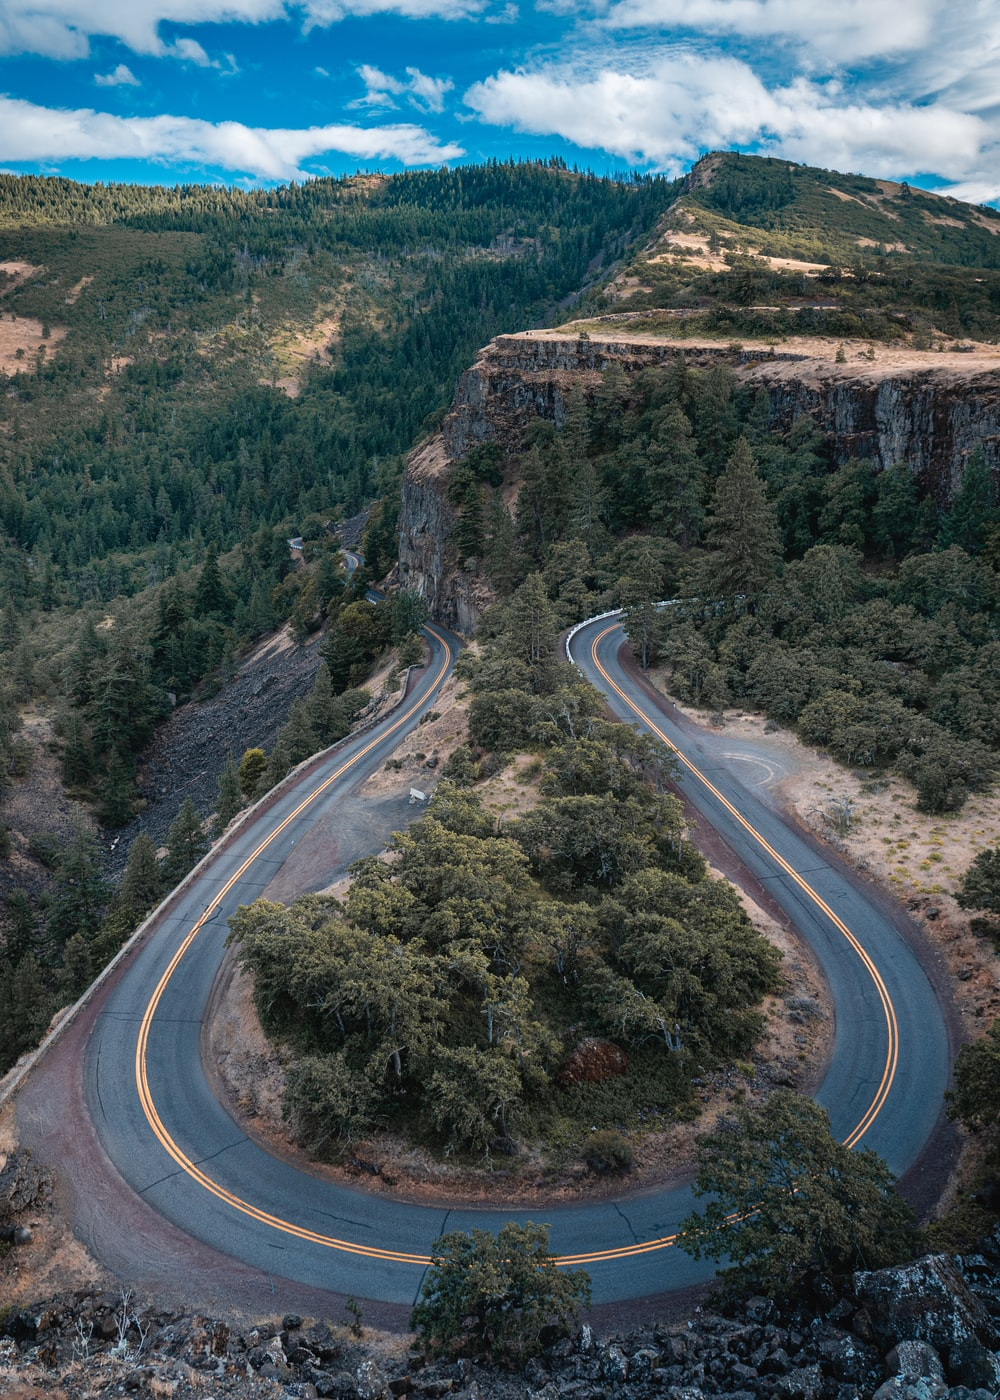 aerial view of road between trees during daytime